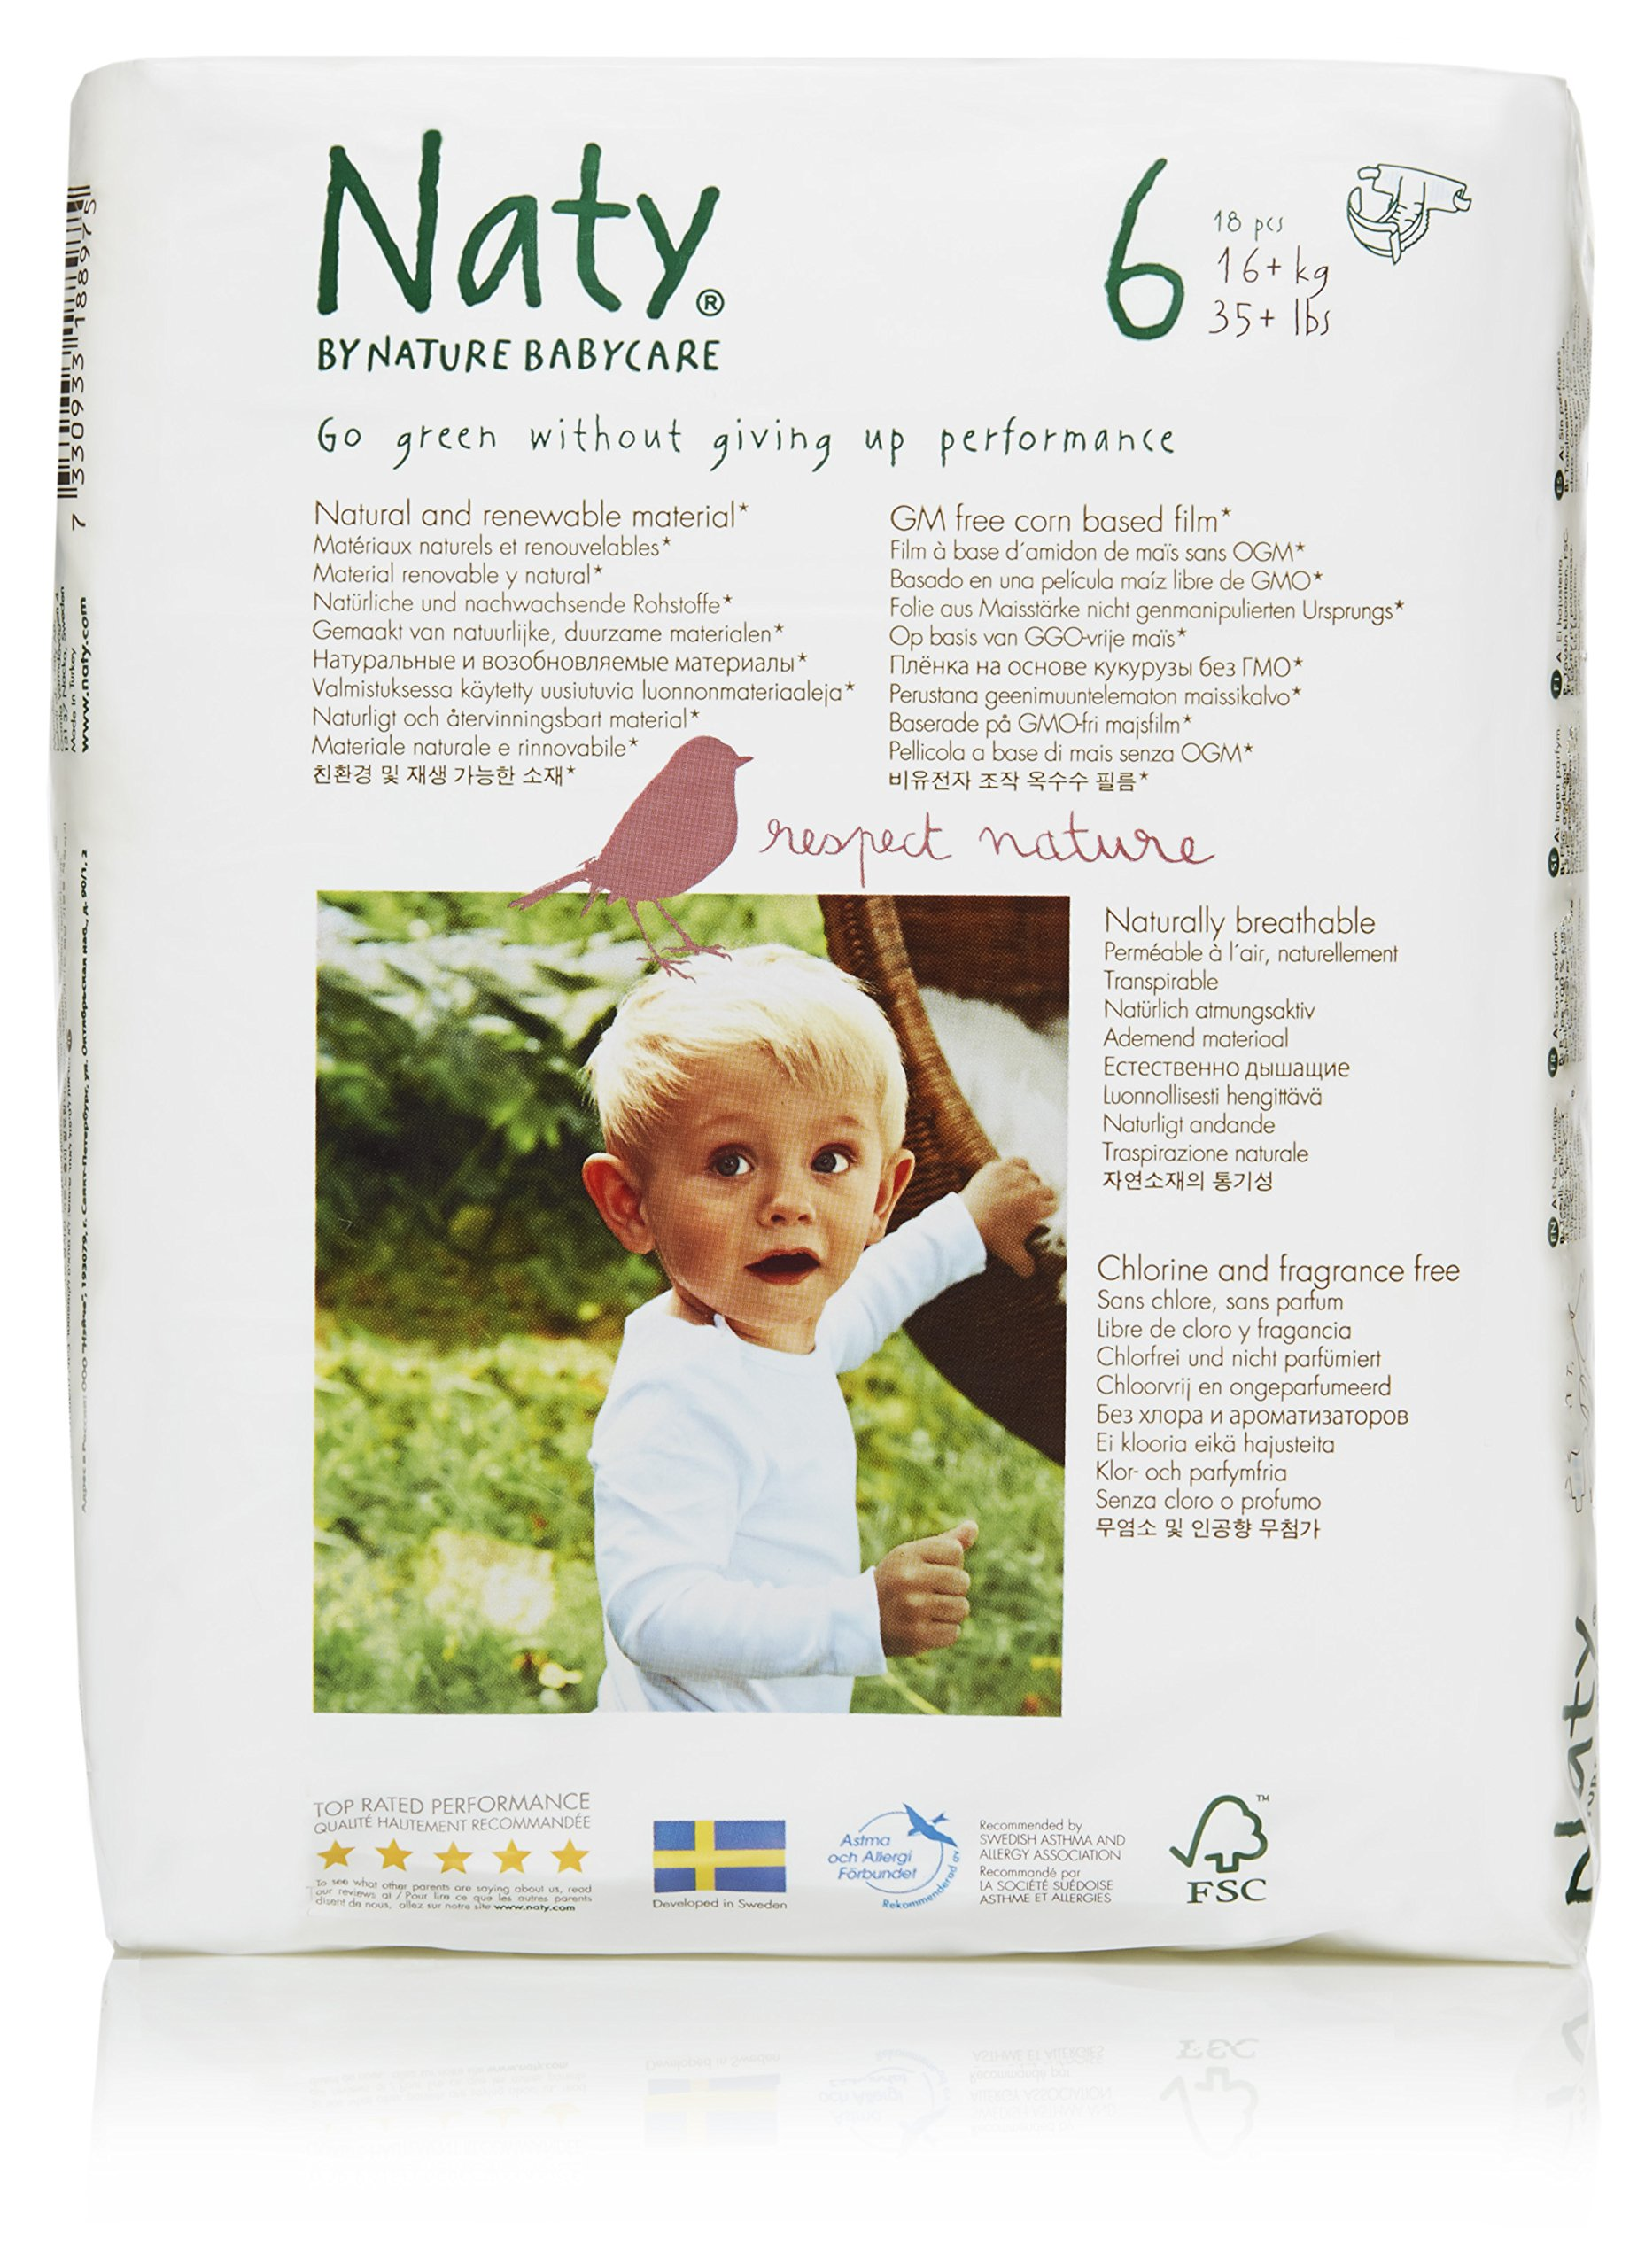 Naty by Nature Babycare Eco-Friendly Disposable Baby Diapers, Size 6, 4 packs of 18 (72 diapers)